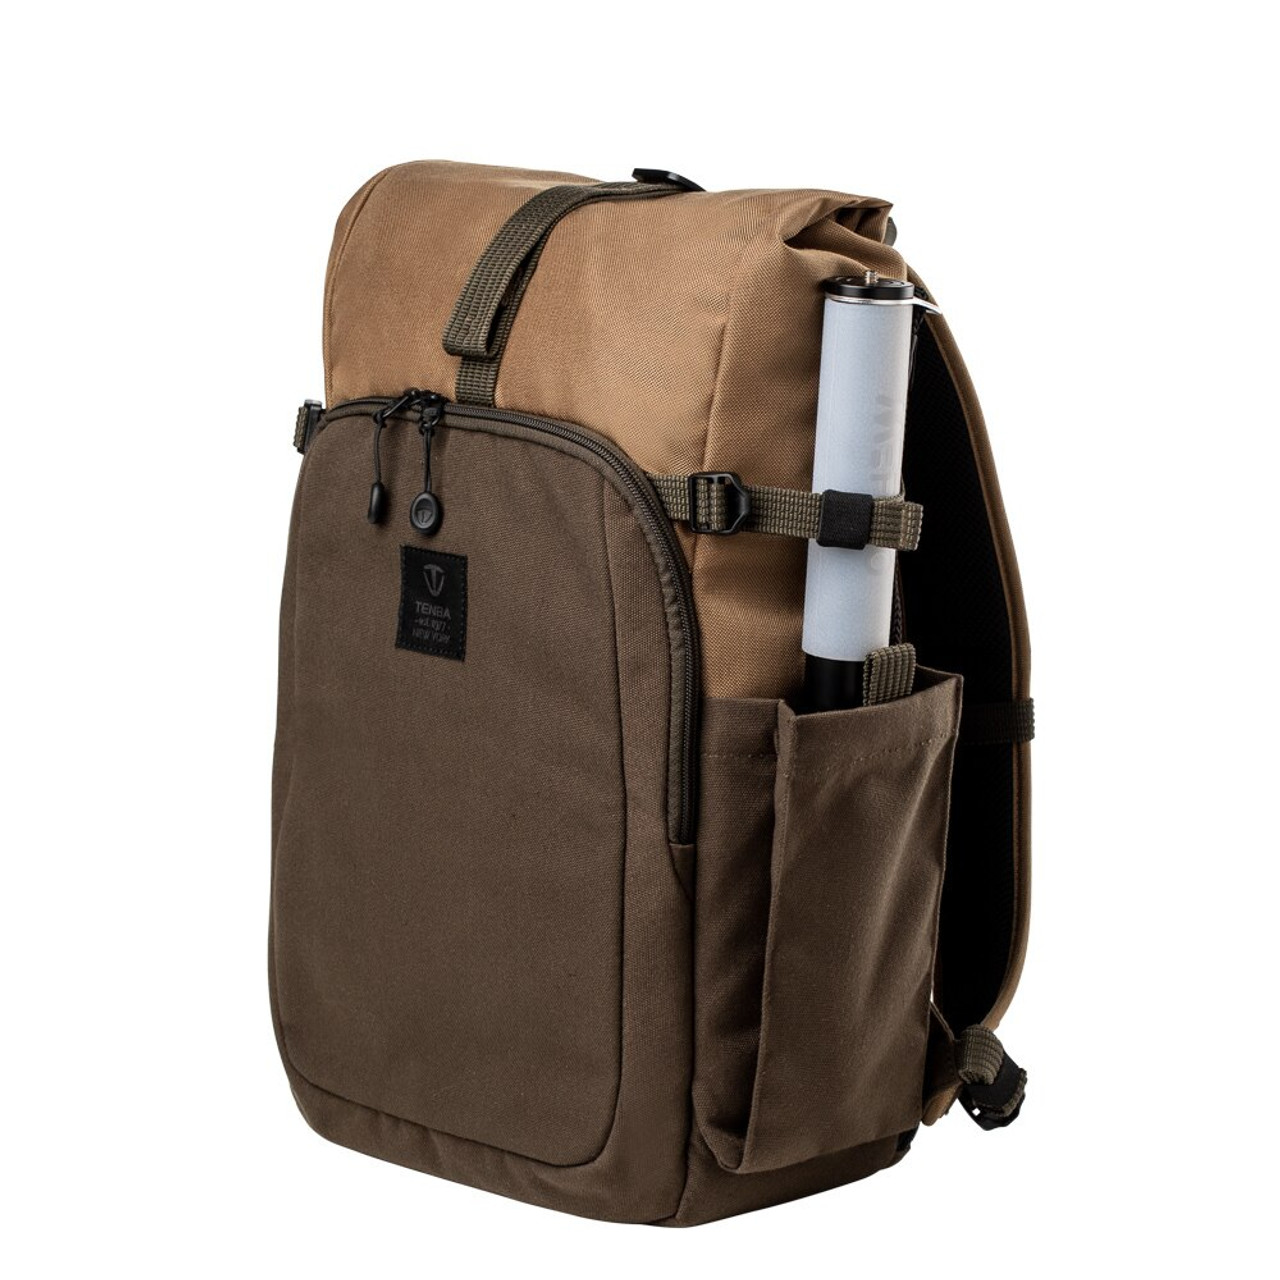 TENBA FULTON BACKPACK 14L